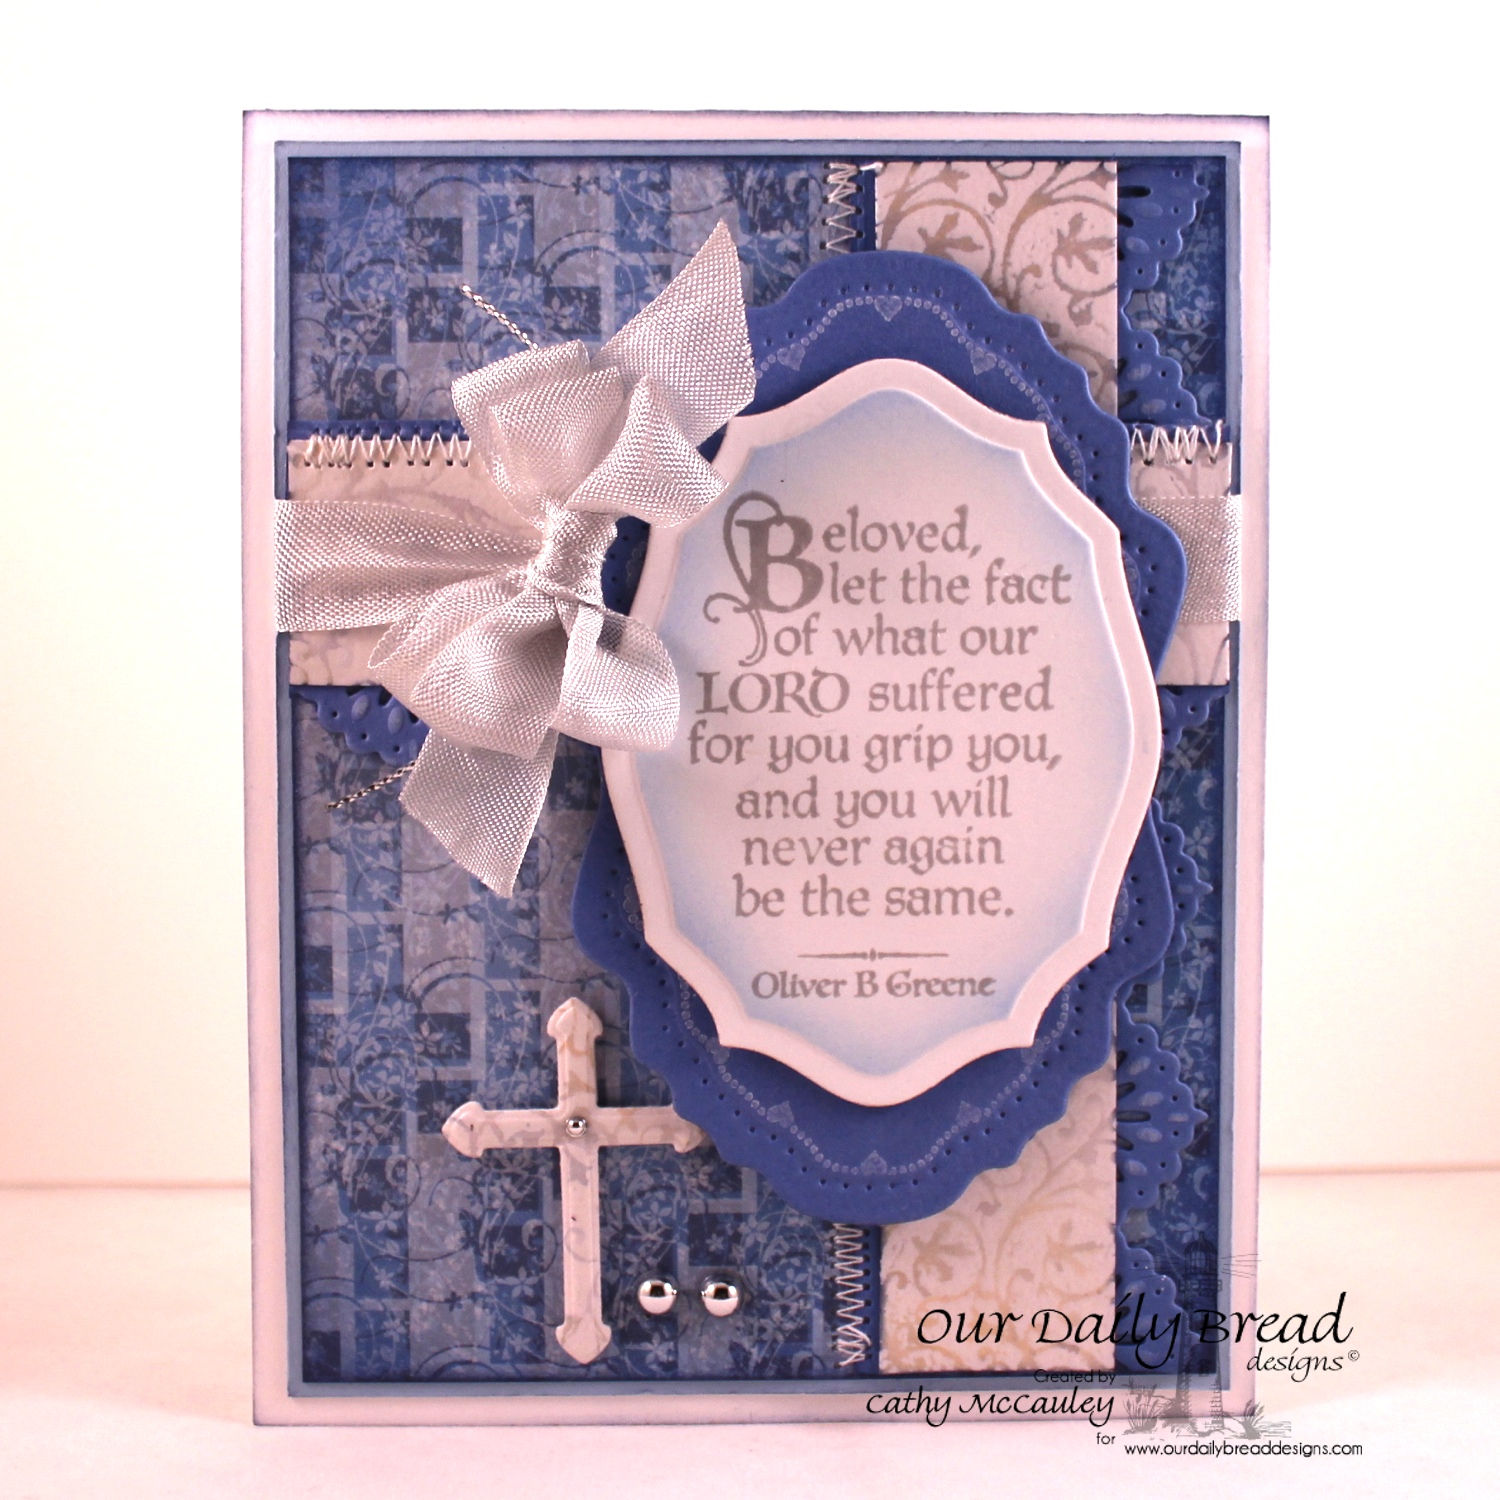 Stamps - Our Daily Bread Designs The Cross, Chalkboard Vine Background, ODBD Christian Faith Paper Collection, ODBD Custom Ornamental Crosses Die, Flourish Label Borders, ODBD Custom Vintage Flourish Pattern Die, ODBD Elegant Ovals Die